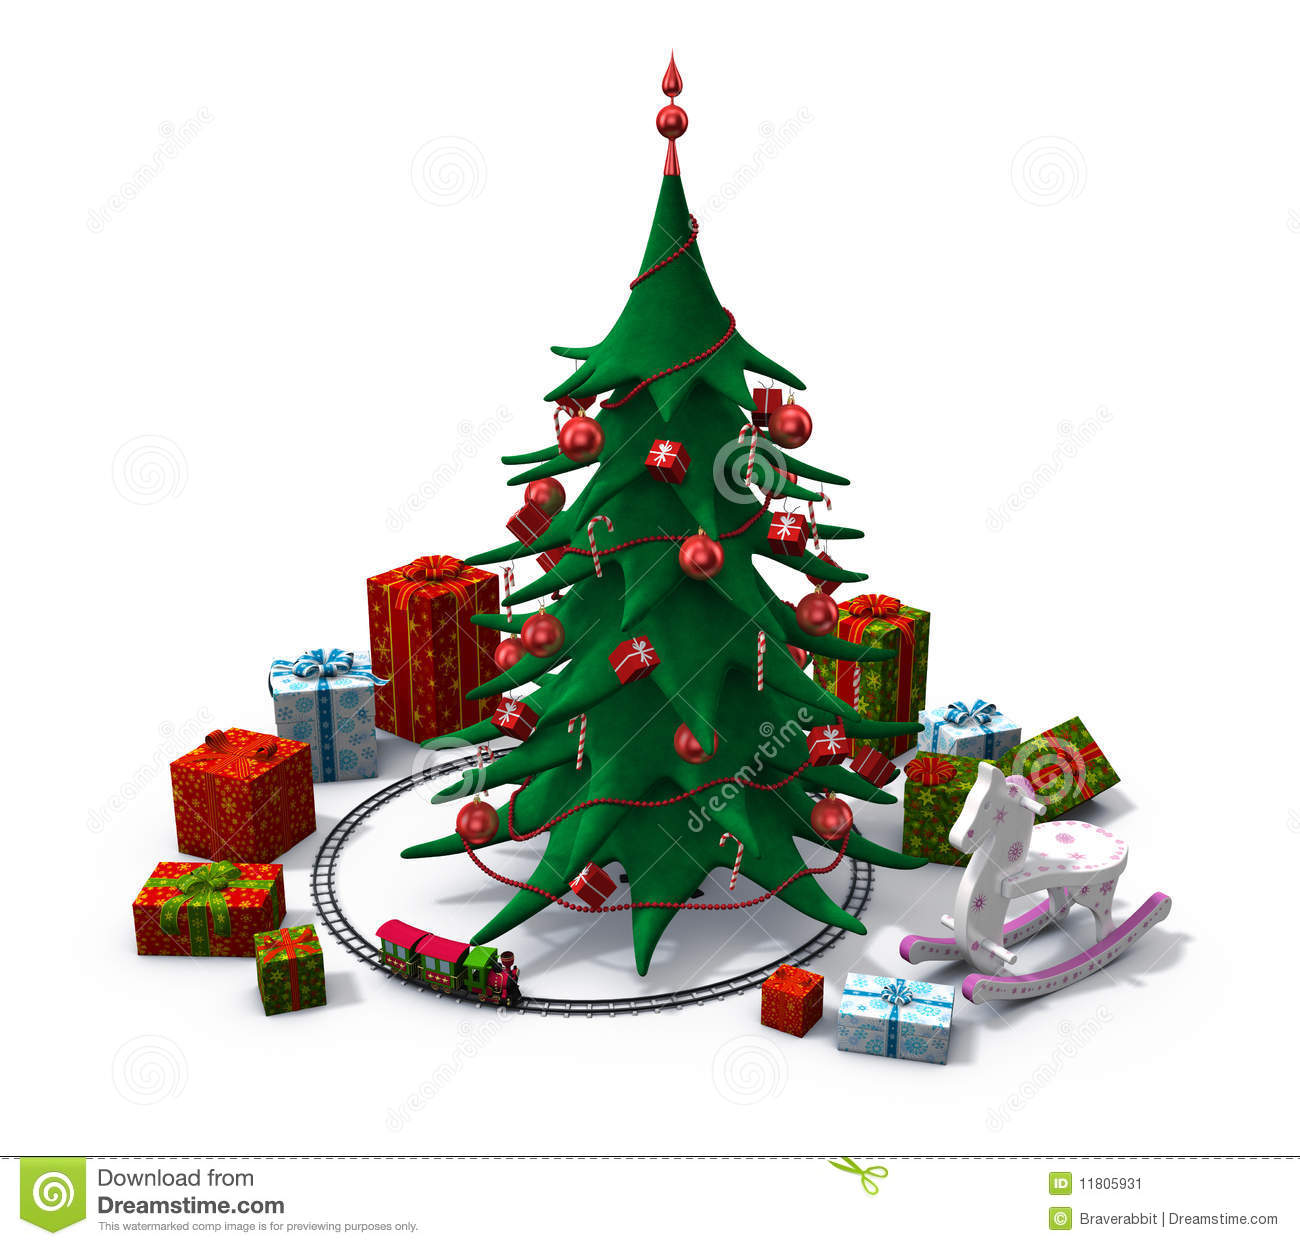 hight resolution of christmas tree with toys clipart